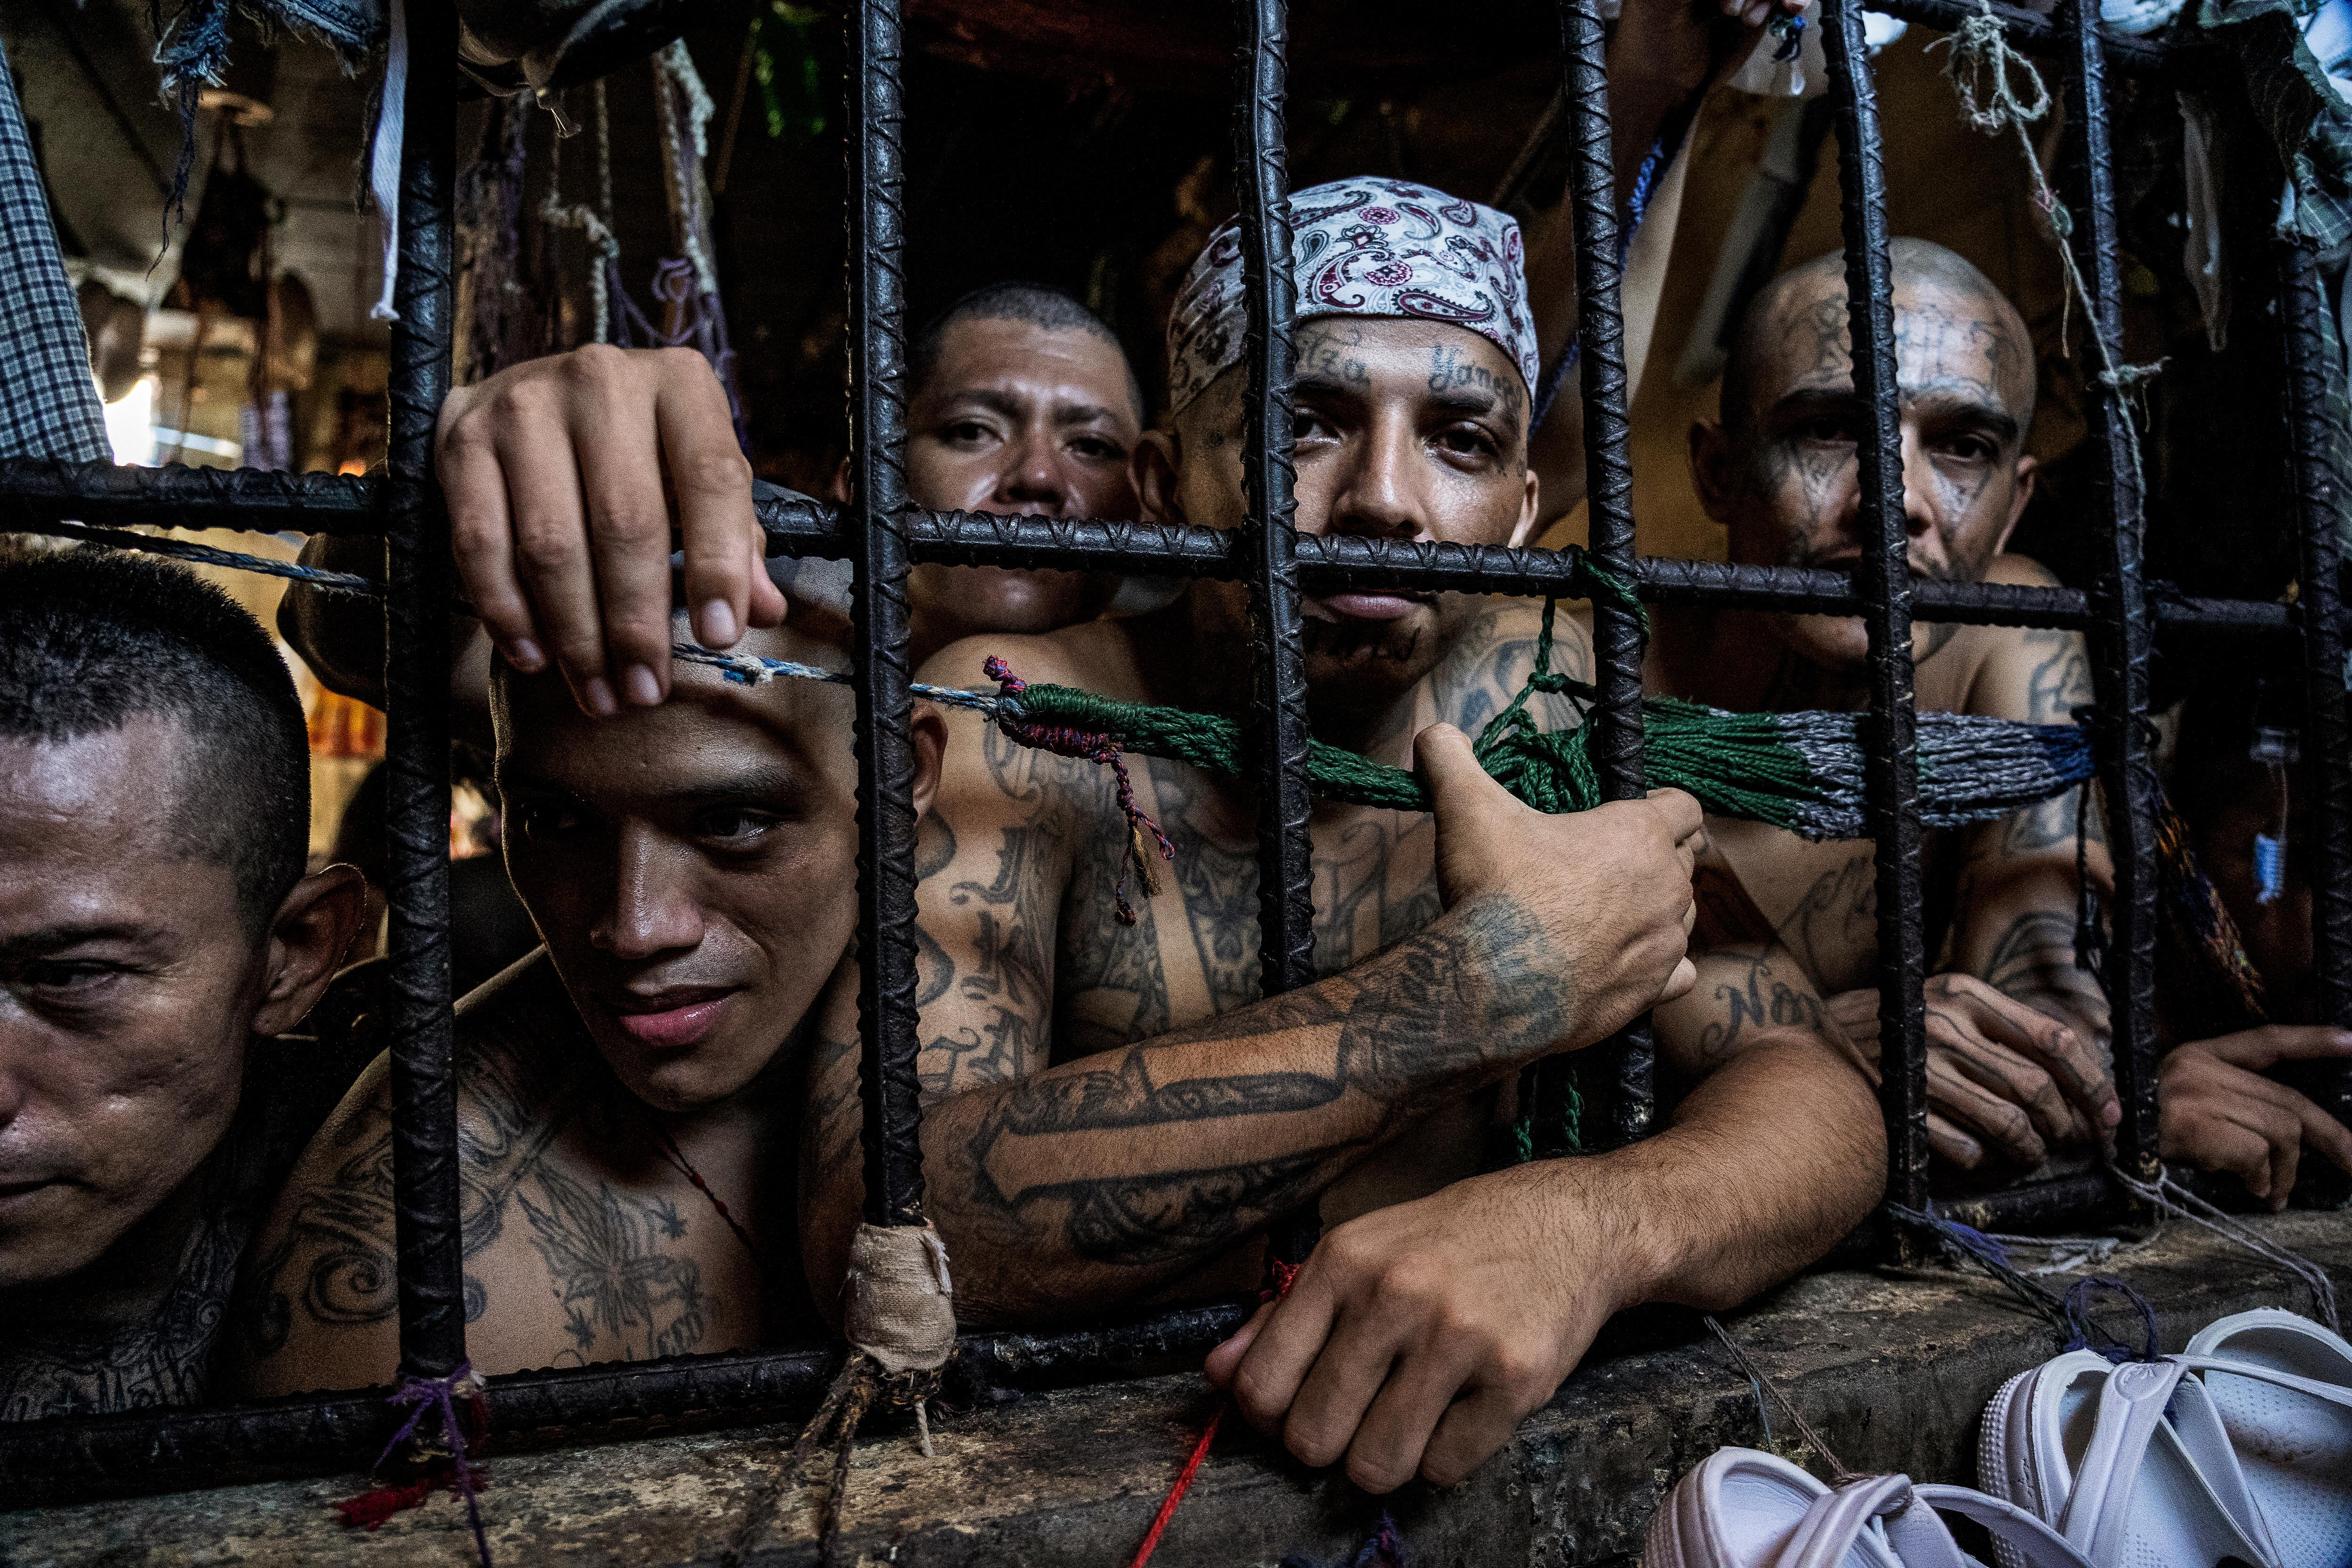 El Salvador: a country ruled by gangs – a photo essay